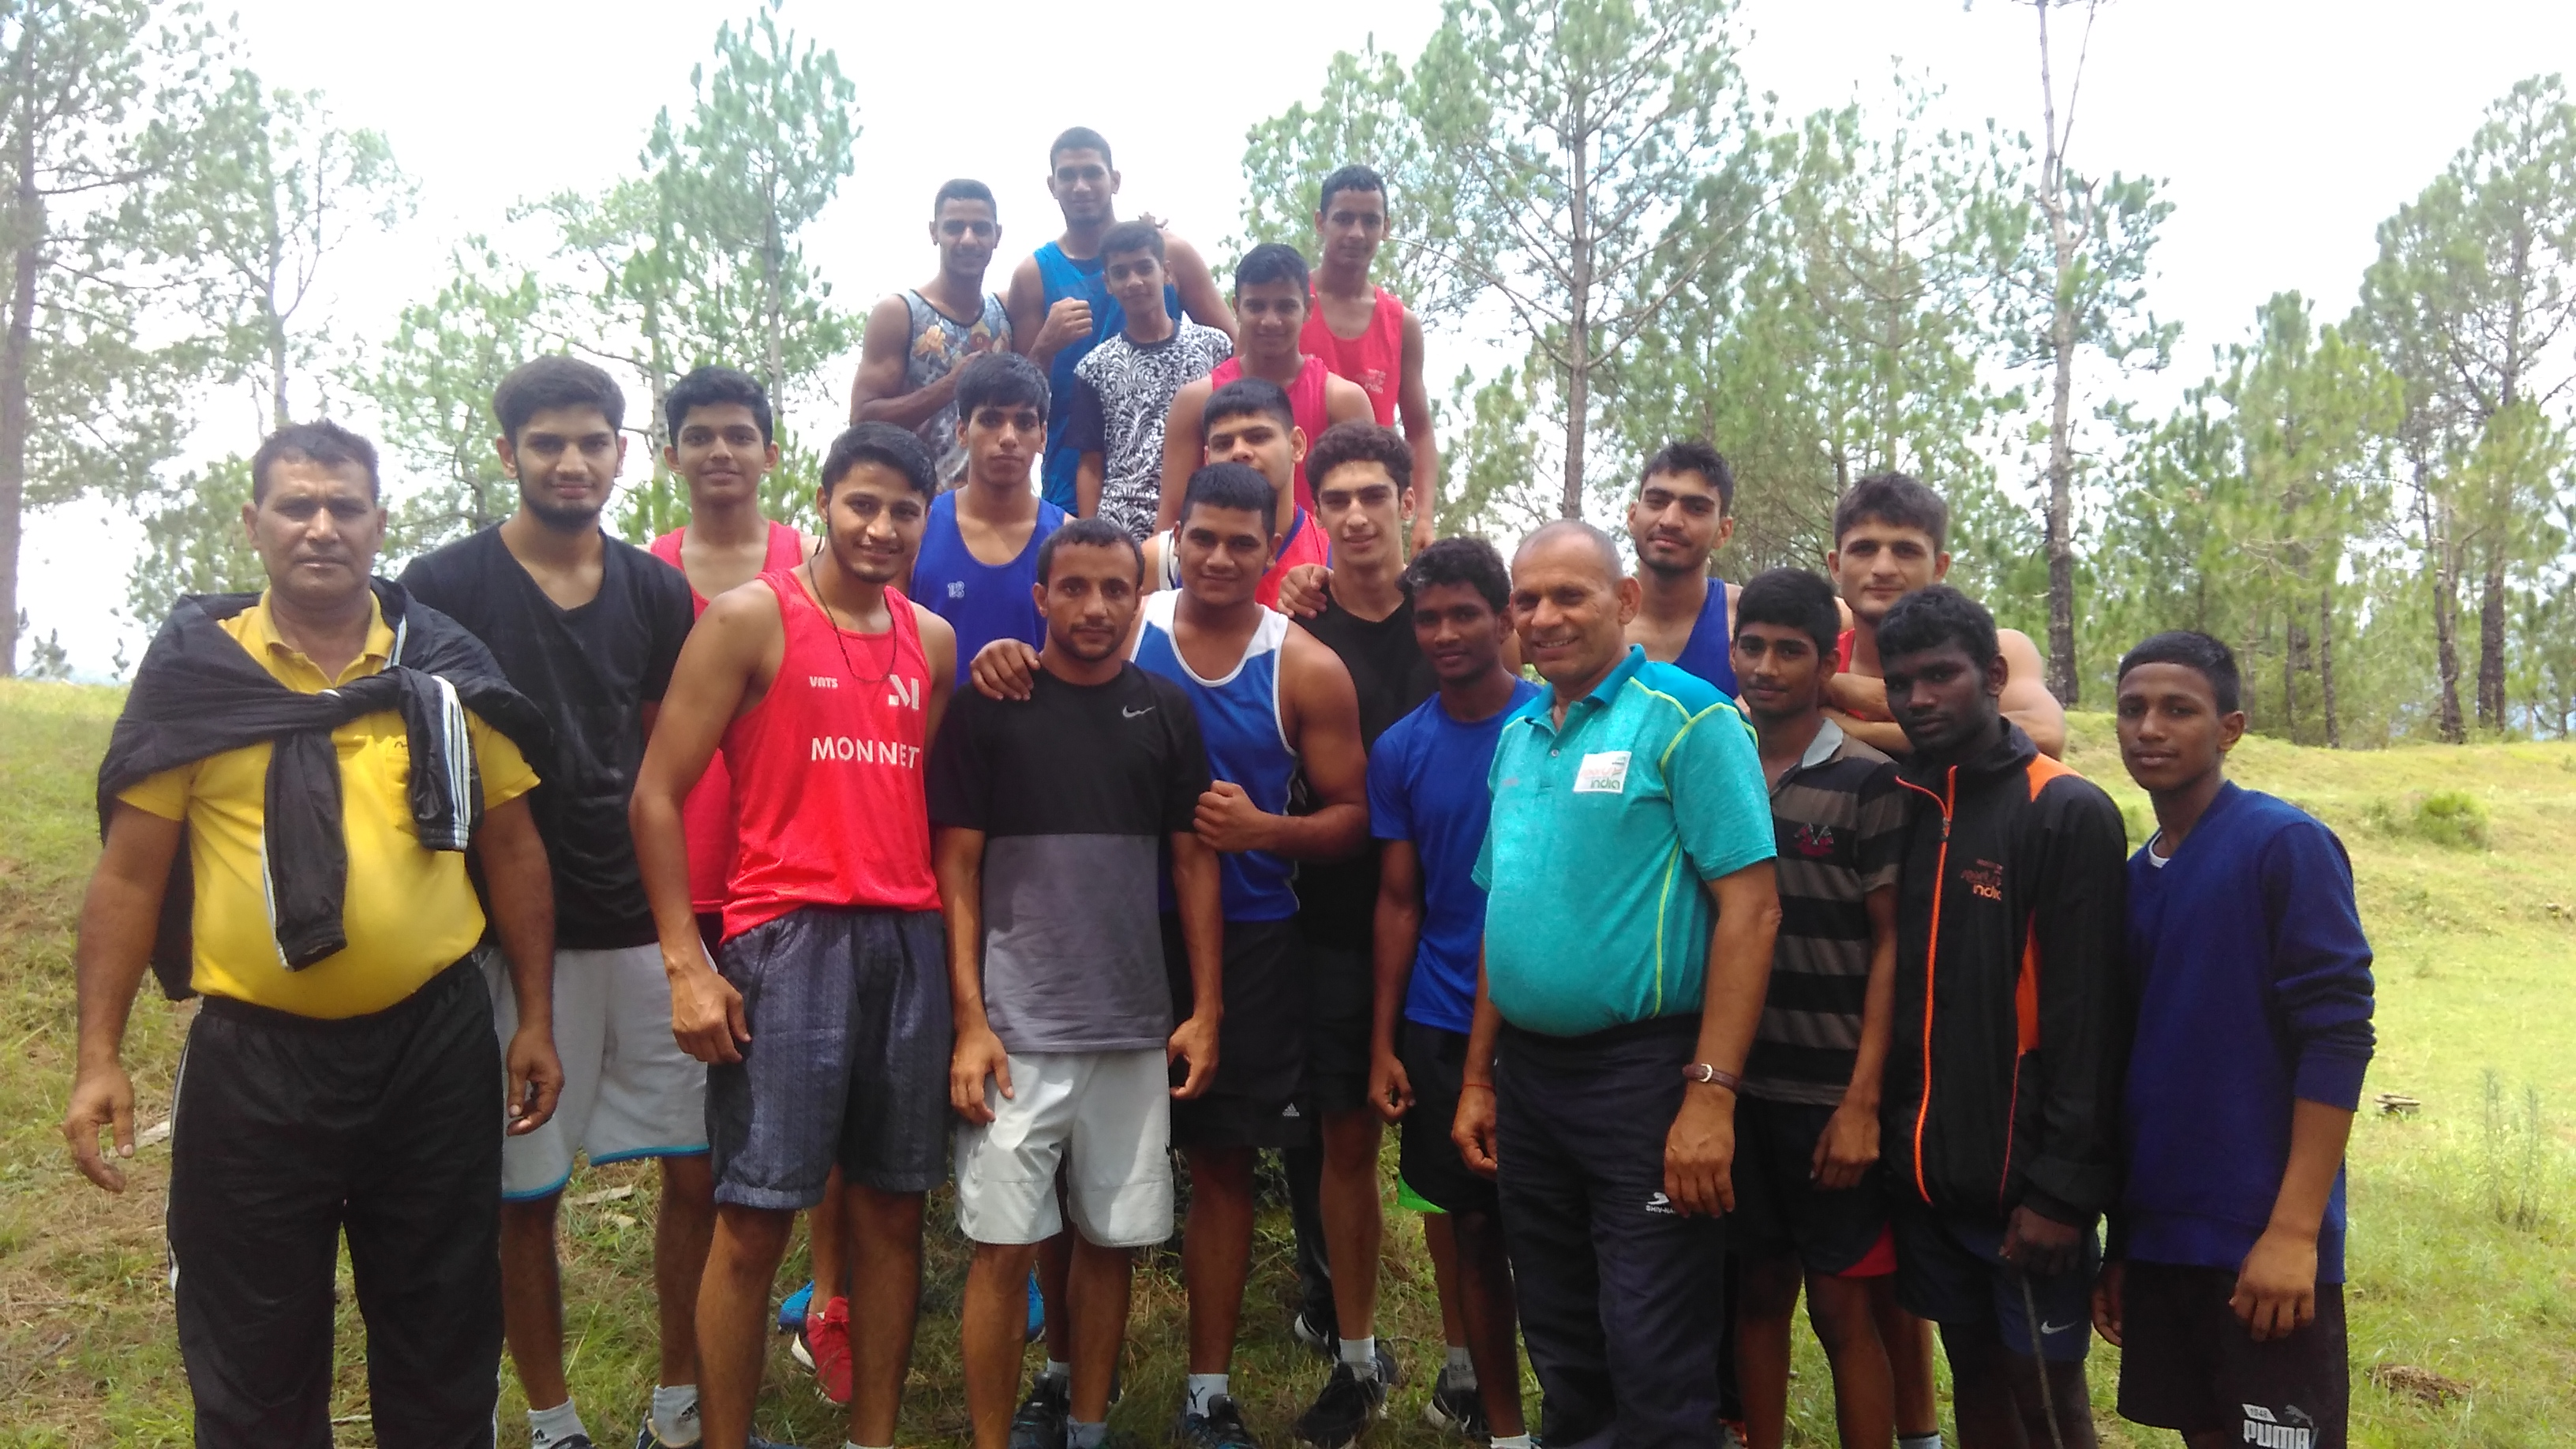 Sports Authority of India National Boxing Academy Rohtak's Trainees During Trakking in Mountains of Chail